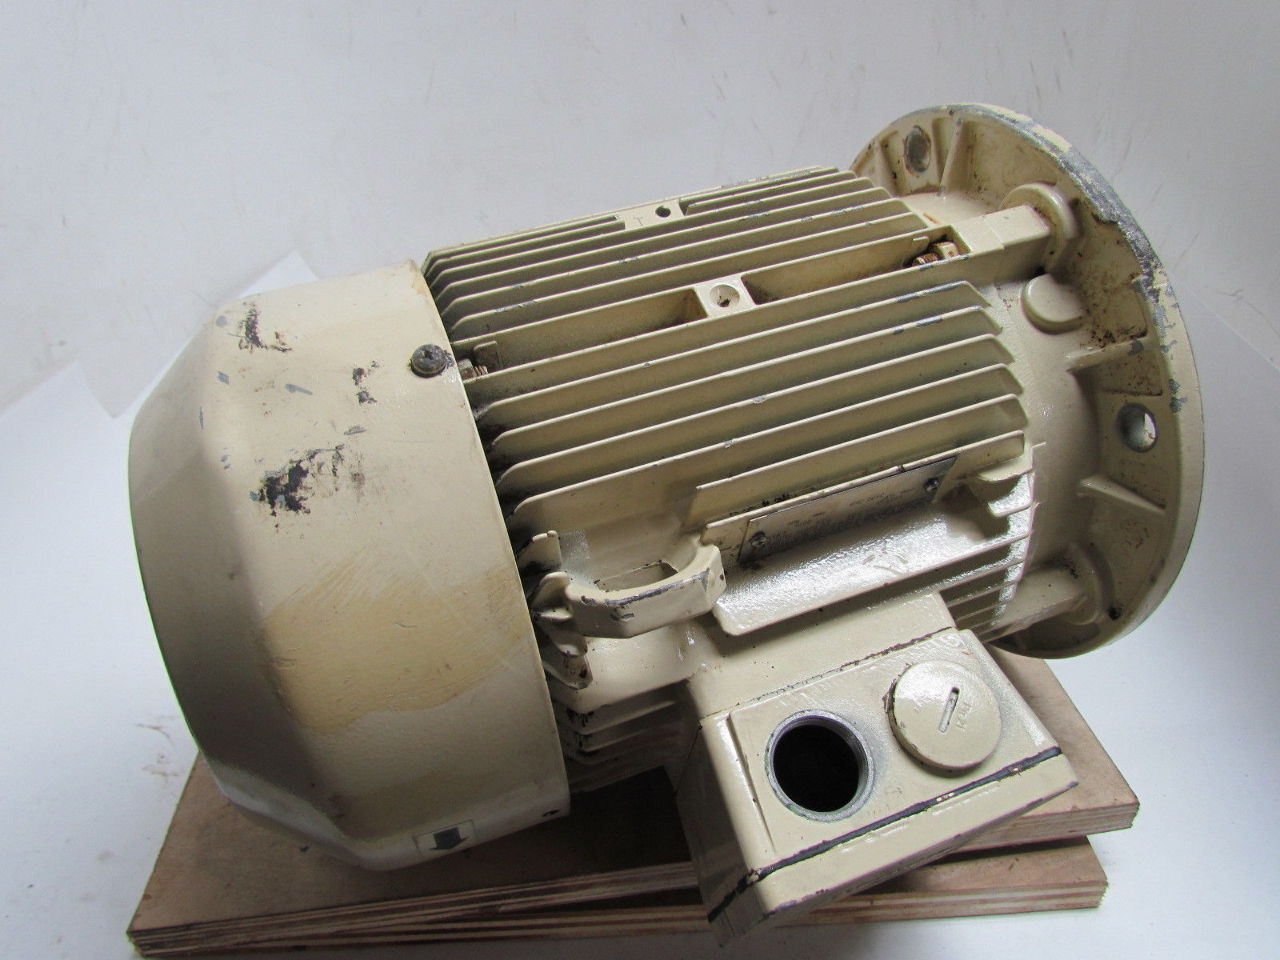 Siemens 1 la5113 2aa91 z 4 6 kw 3 ph 3490 rpm 480 v 1 kw electric motor